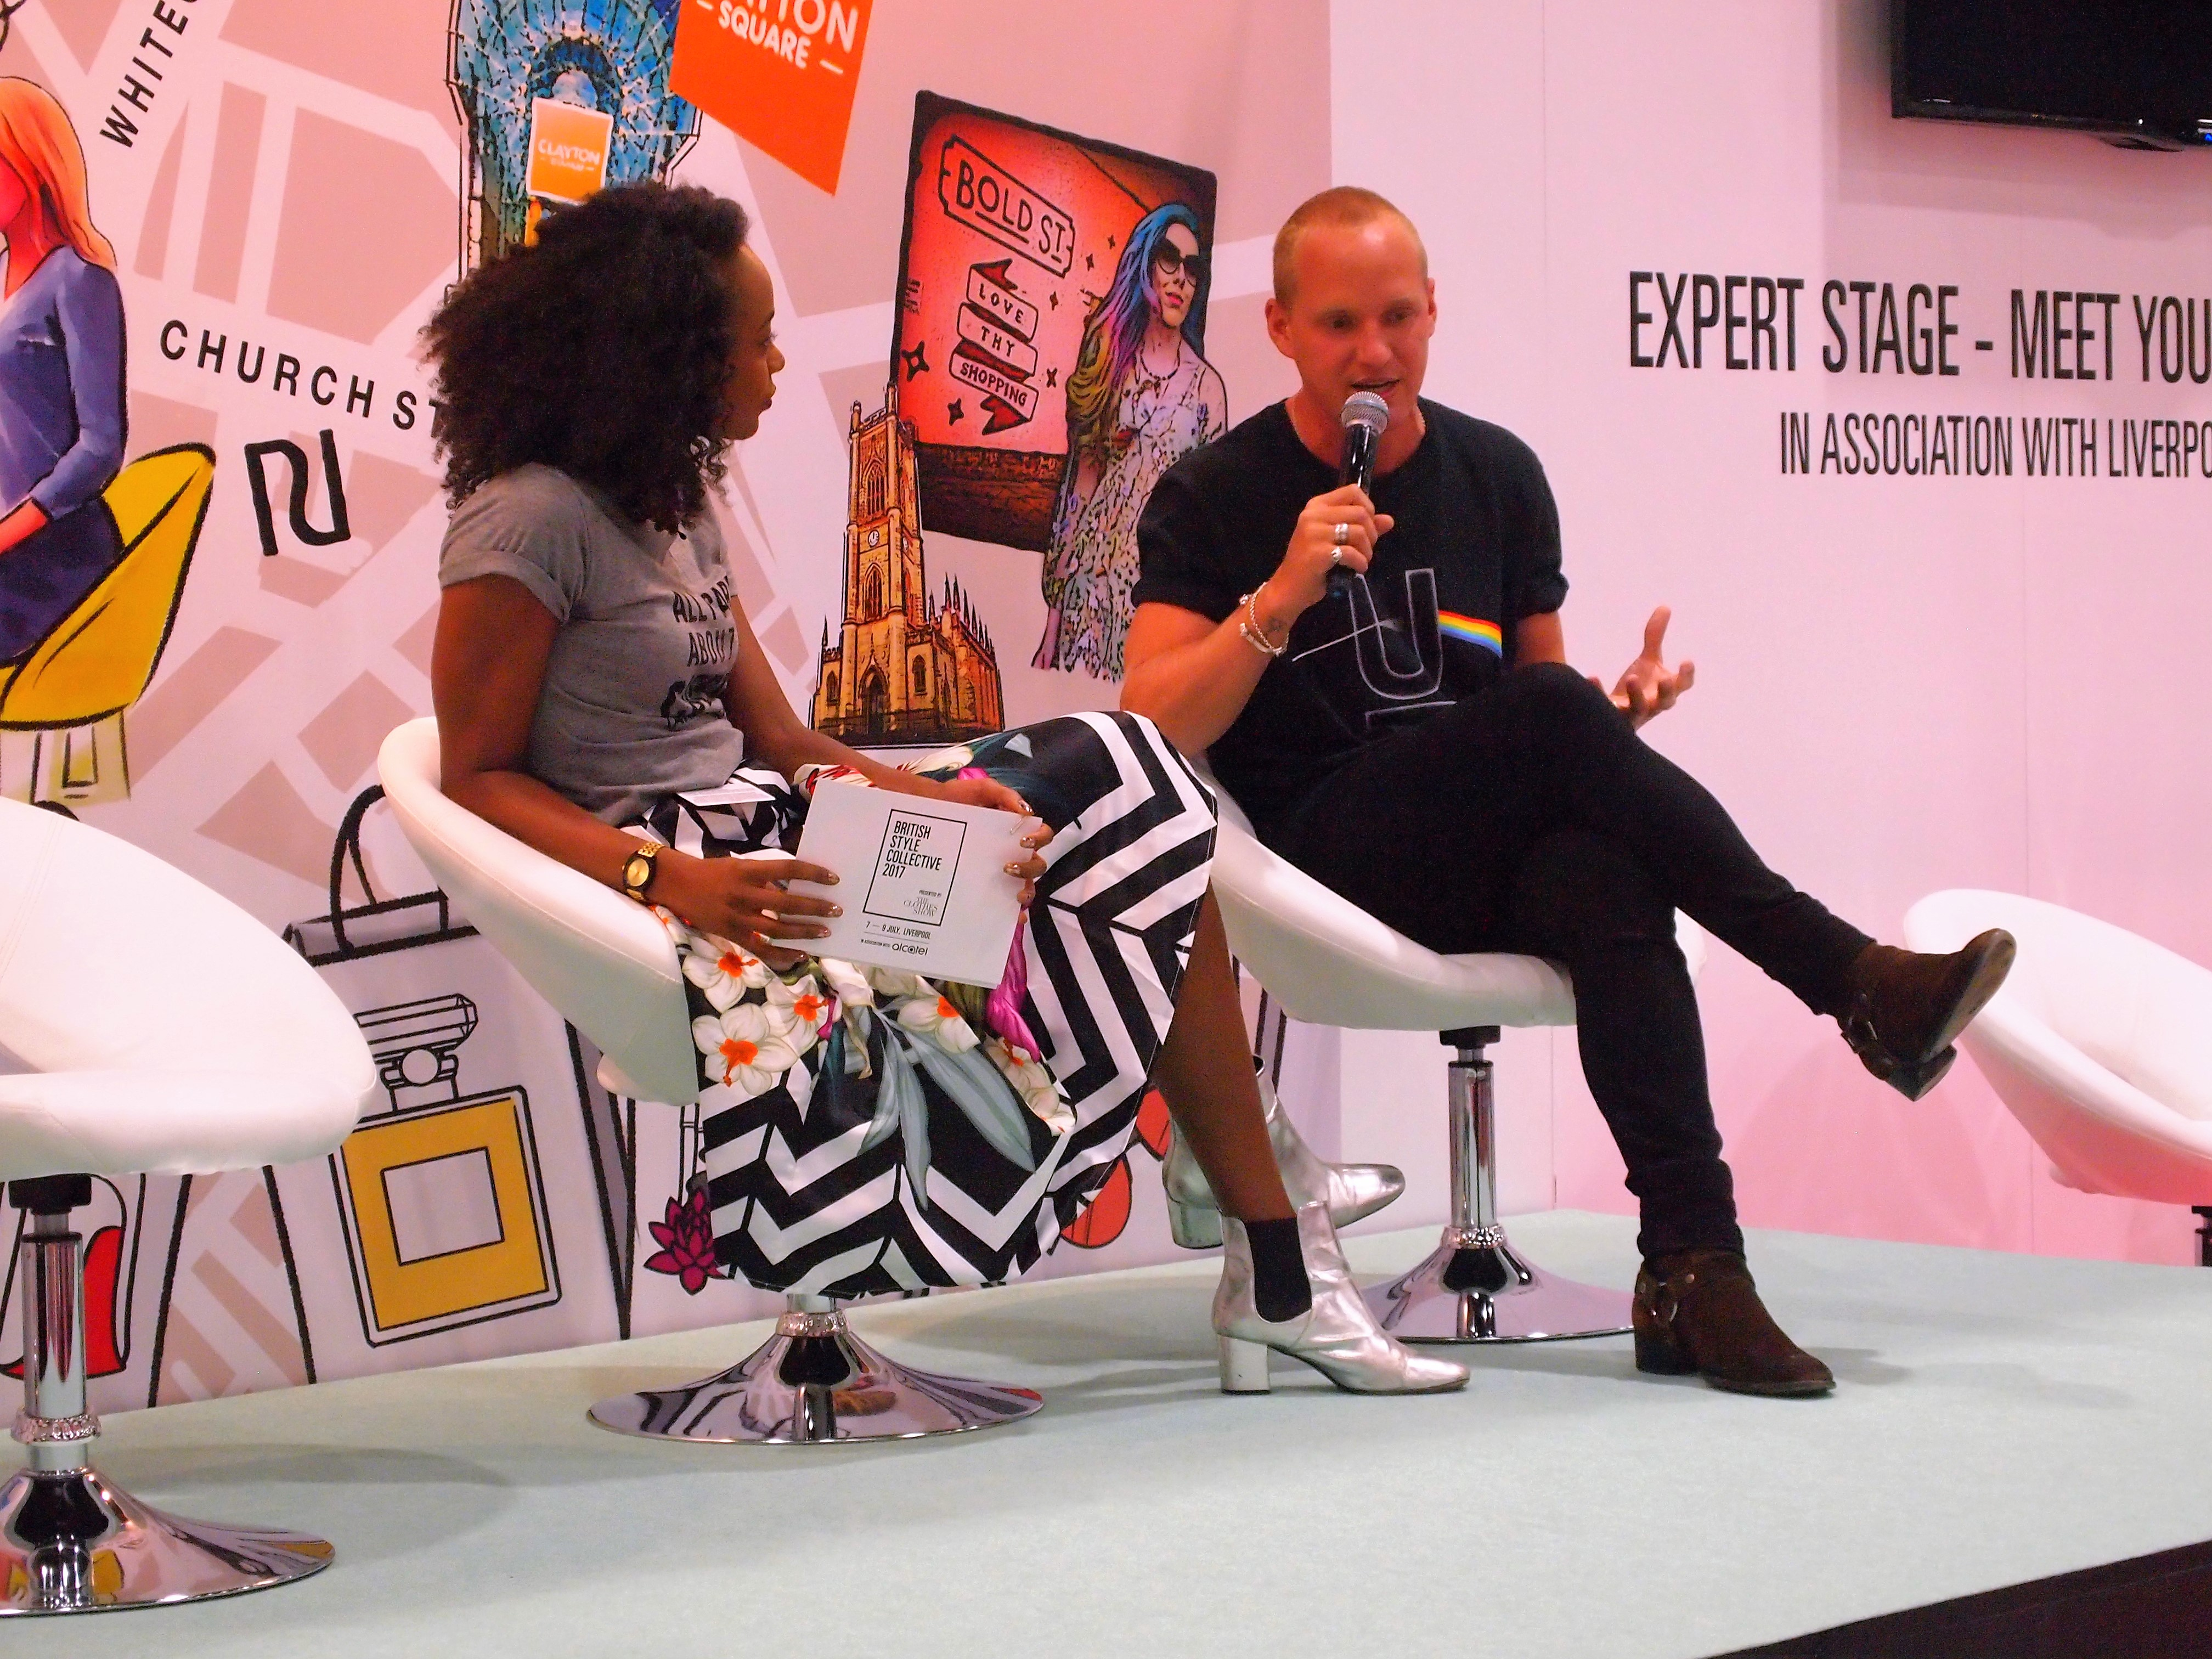 Jamie Laing talks about his brand 'Candy Kittens' on the Expert Stage